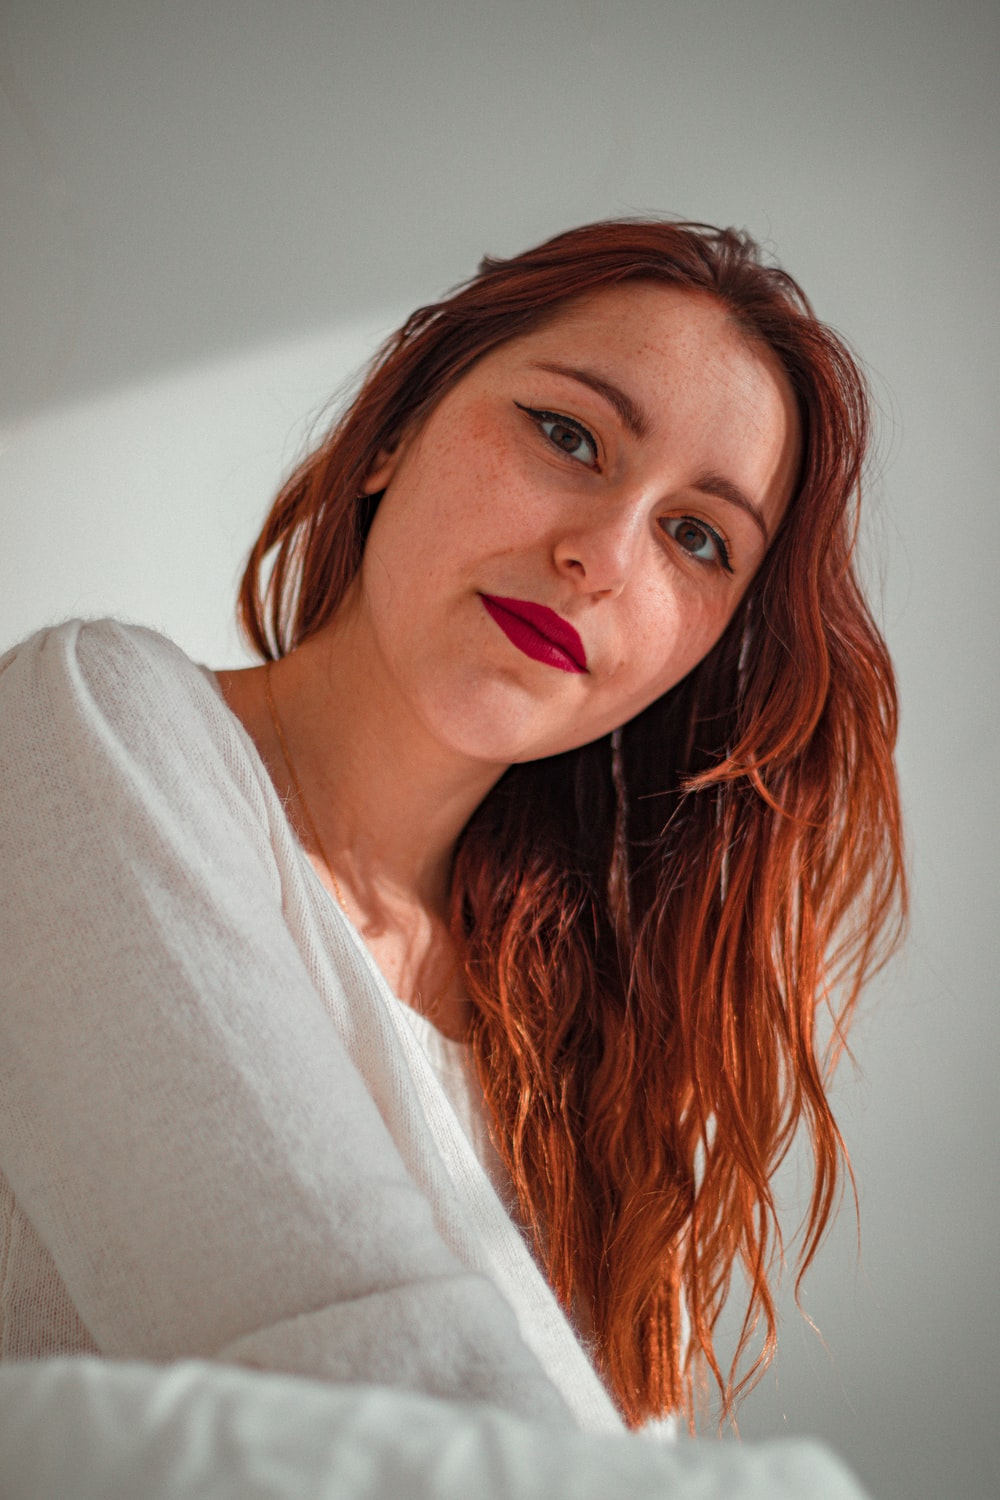 woman in white shirt with red hair